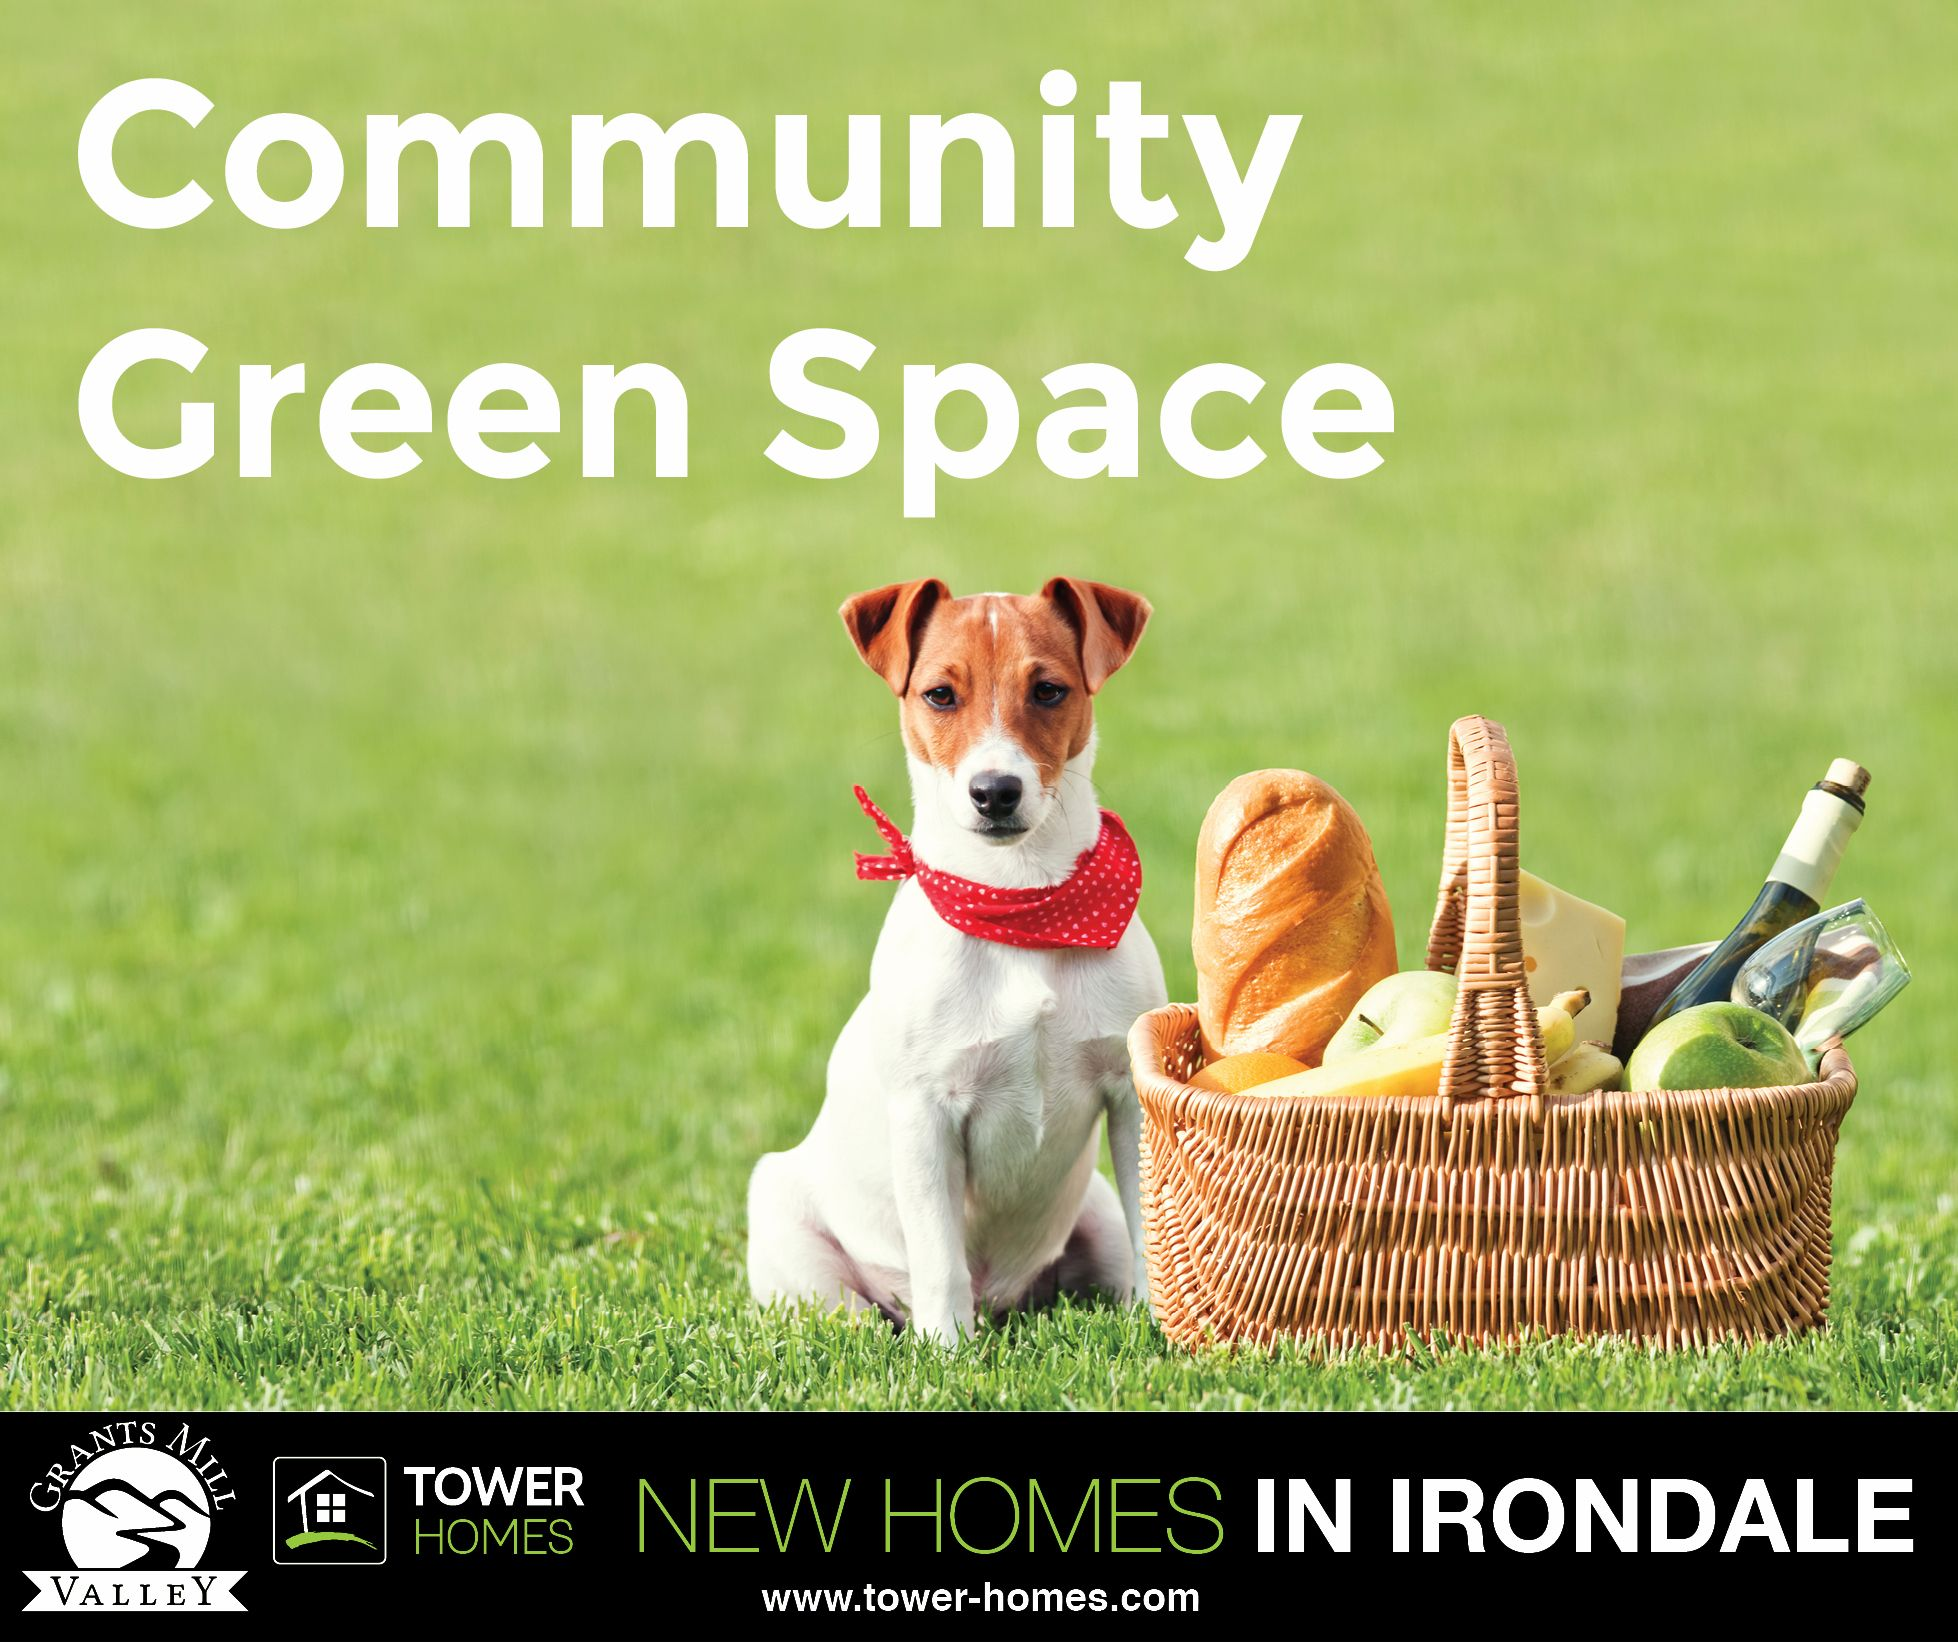 Grants mill valley new homes in irondale with images